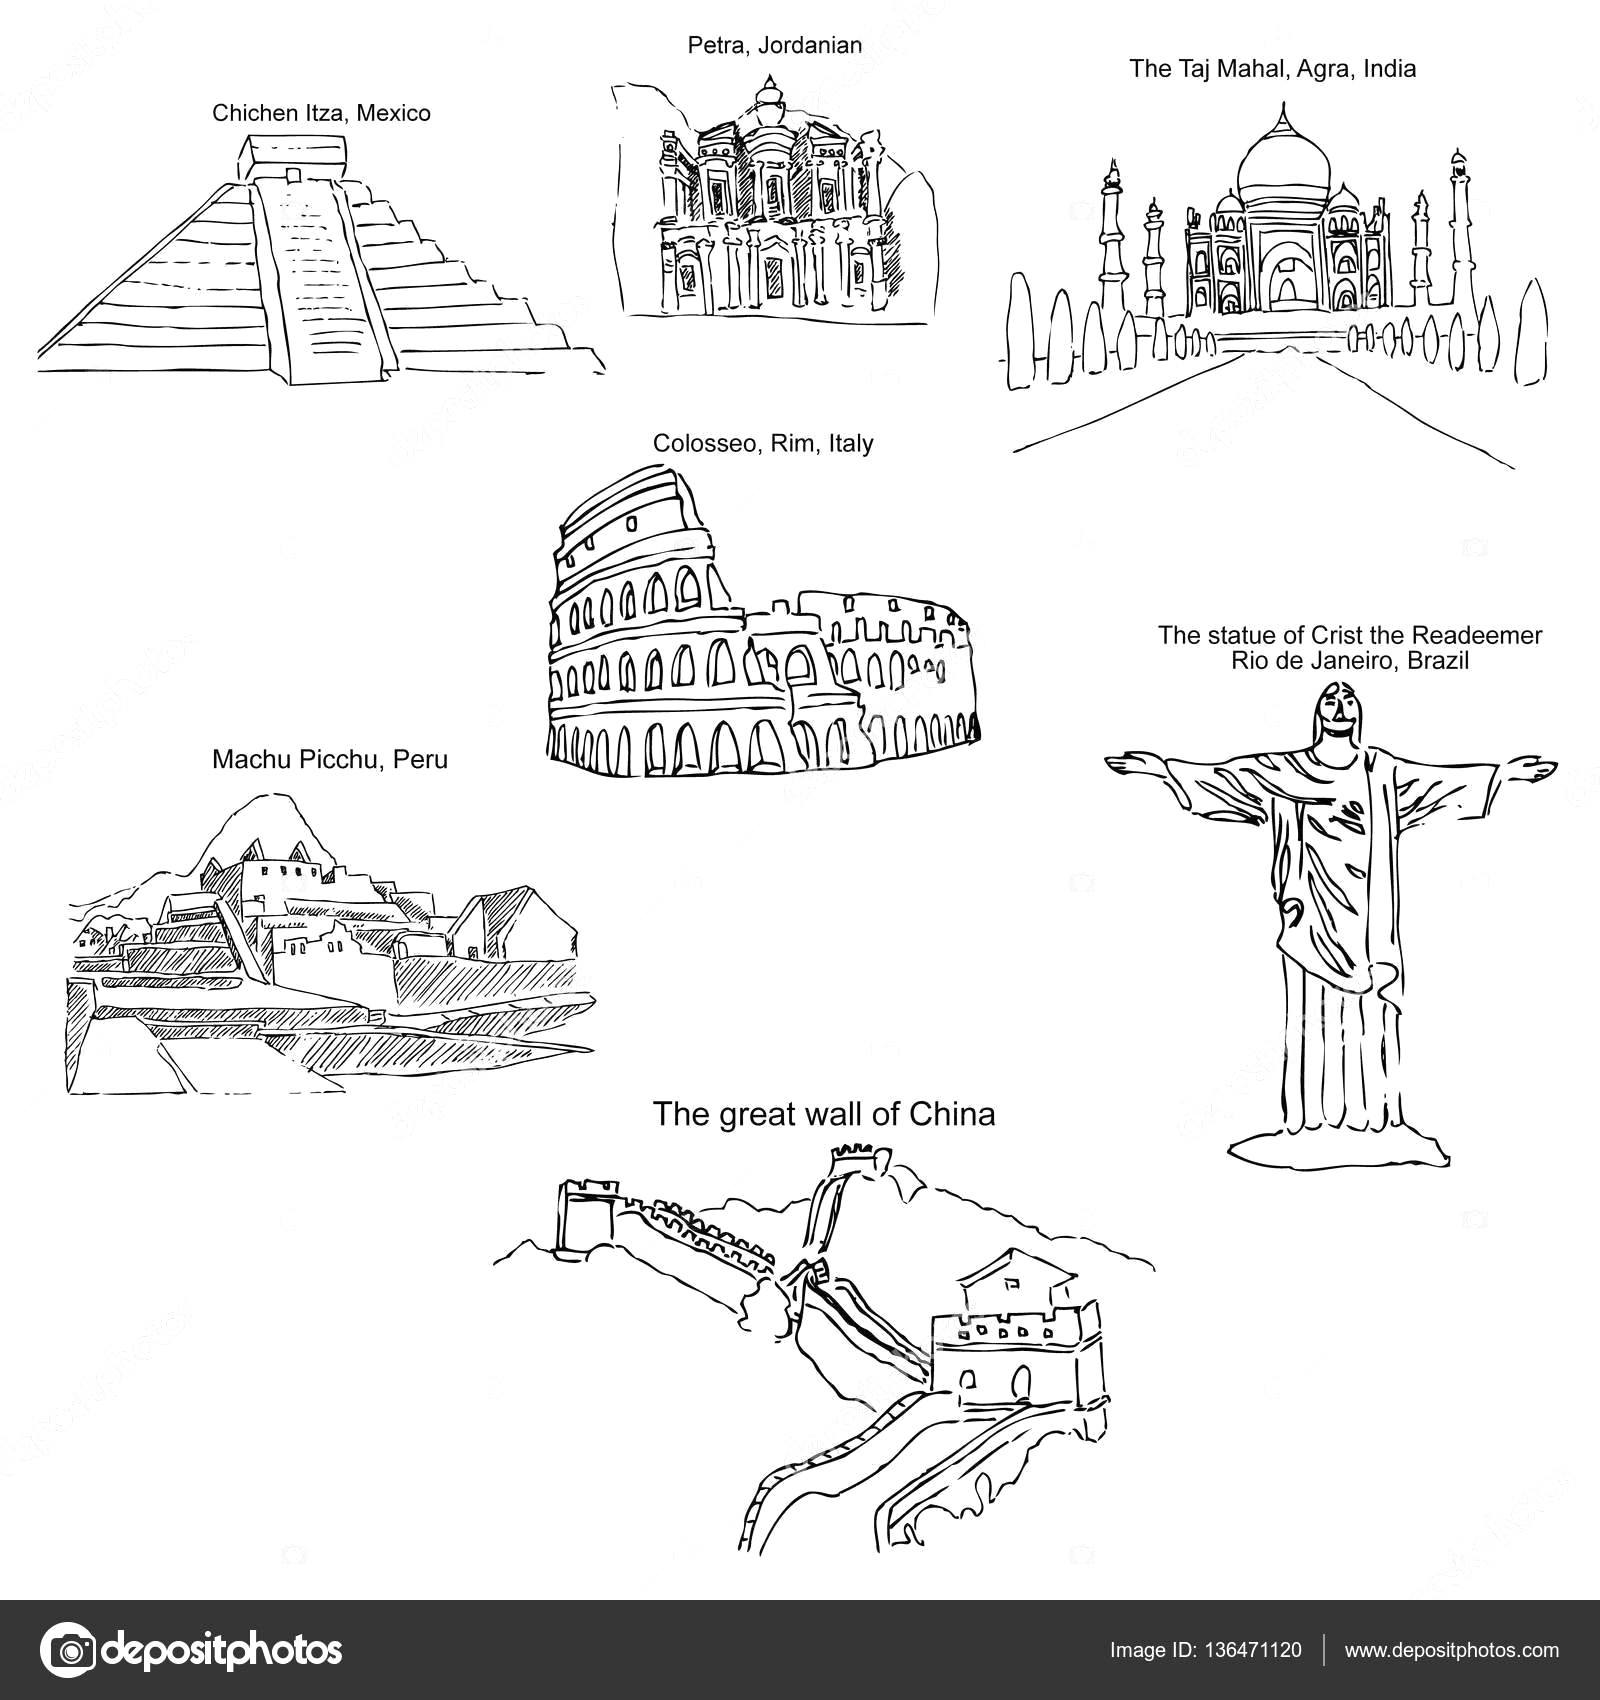 7 Wonders Of the World Coloring Pages World 7 Wonders Coloring Pages Sketch Coloring Page